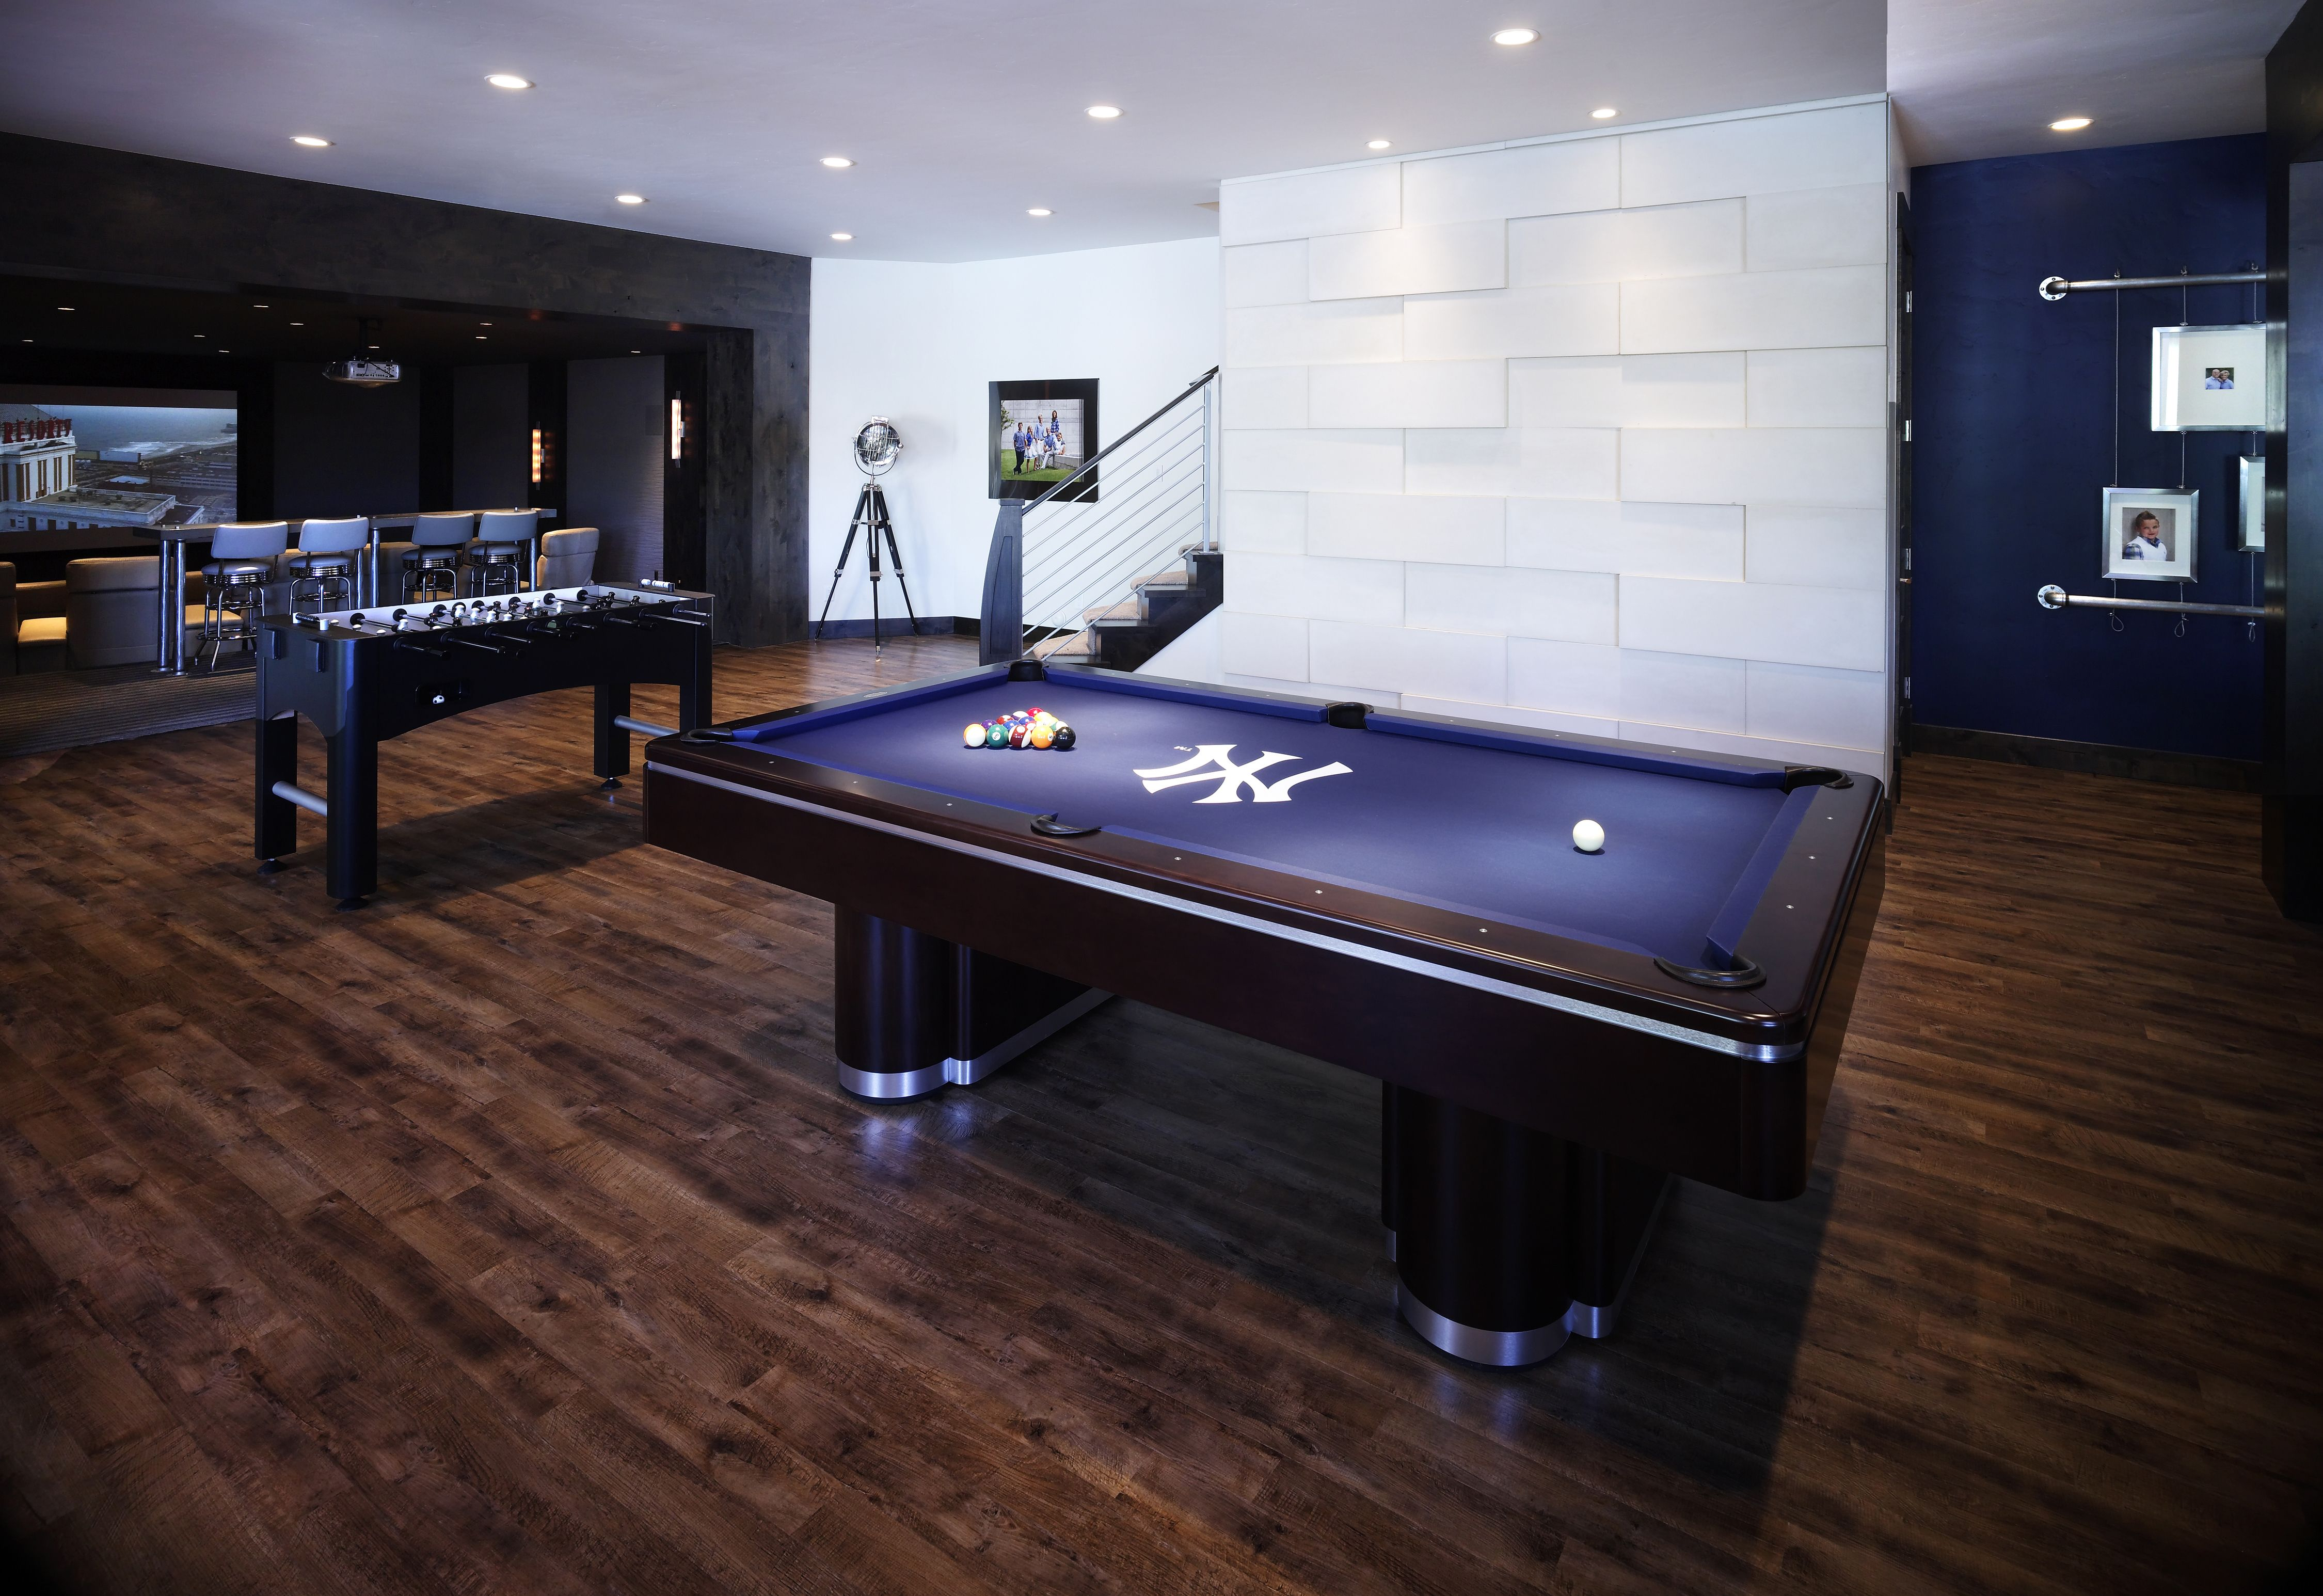 Want This Pool Table For My Future Yankees Themed Game Room